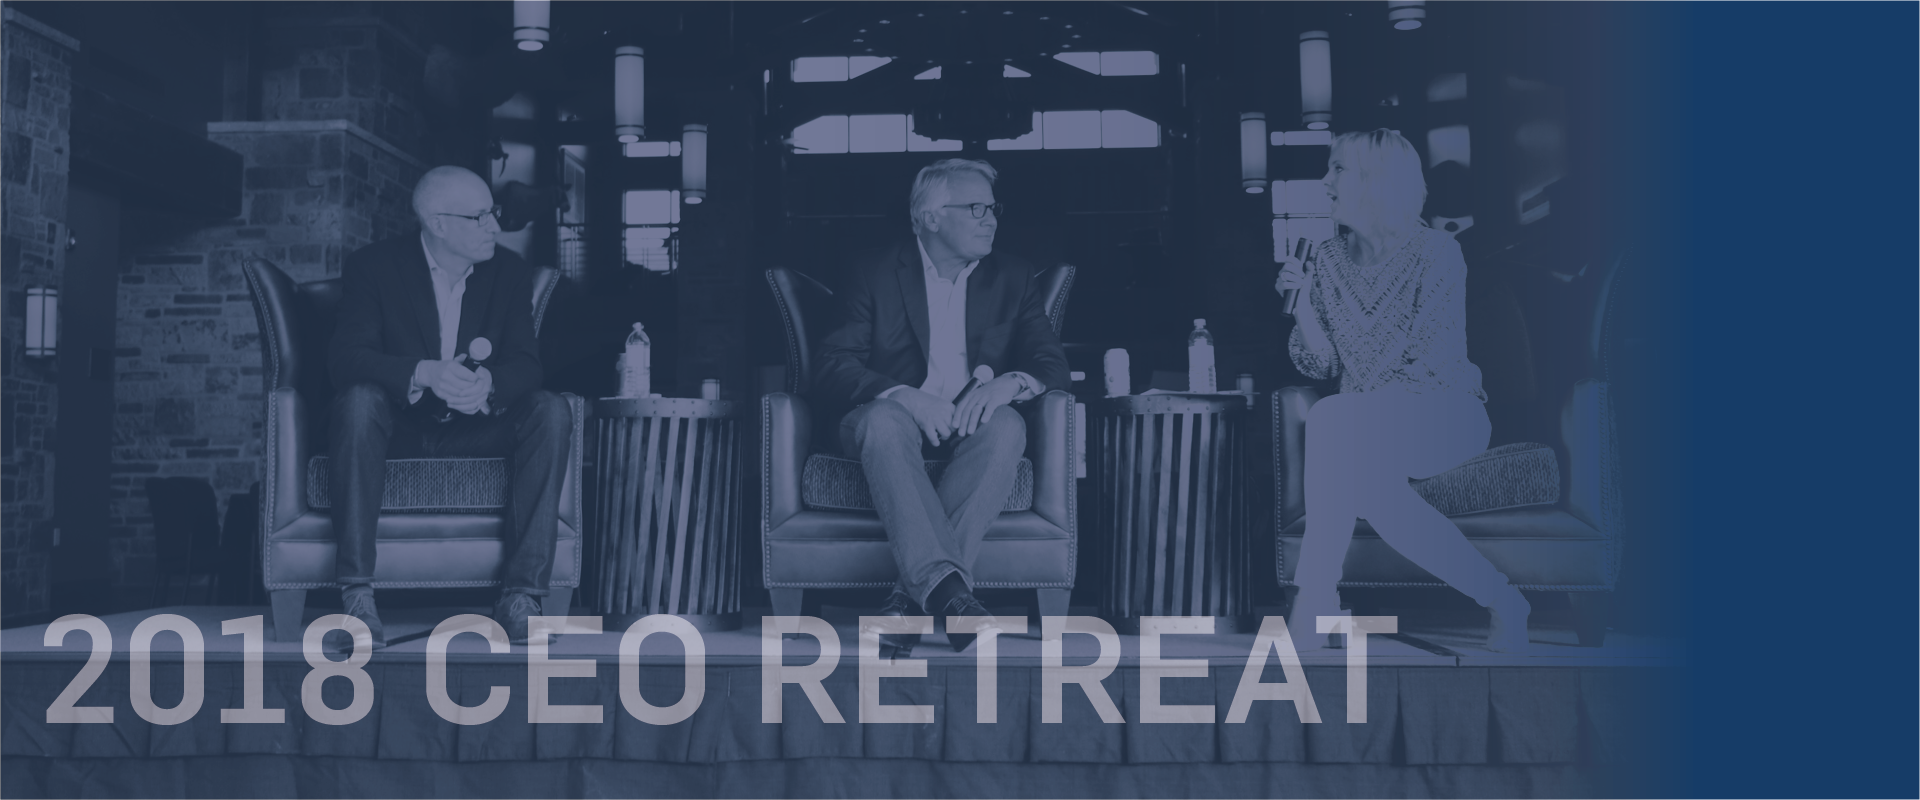 2018-CEO-Retreat-.png